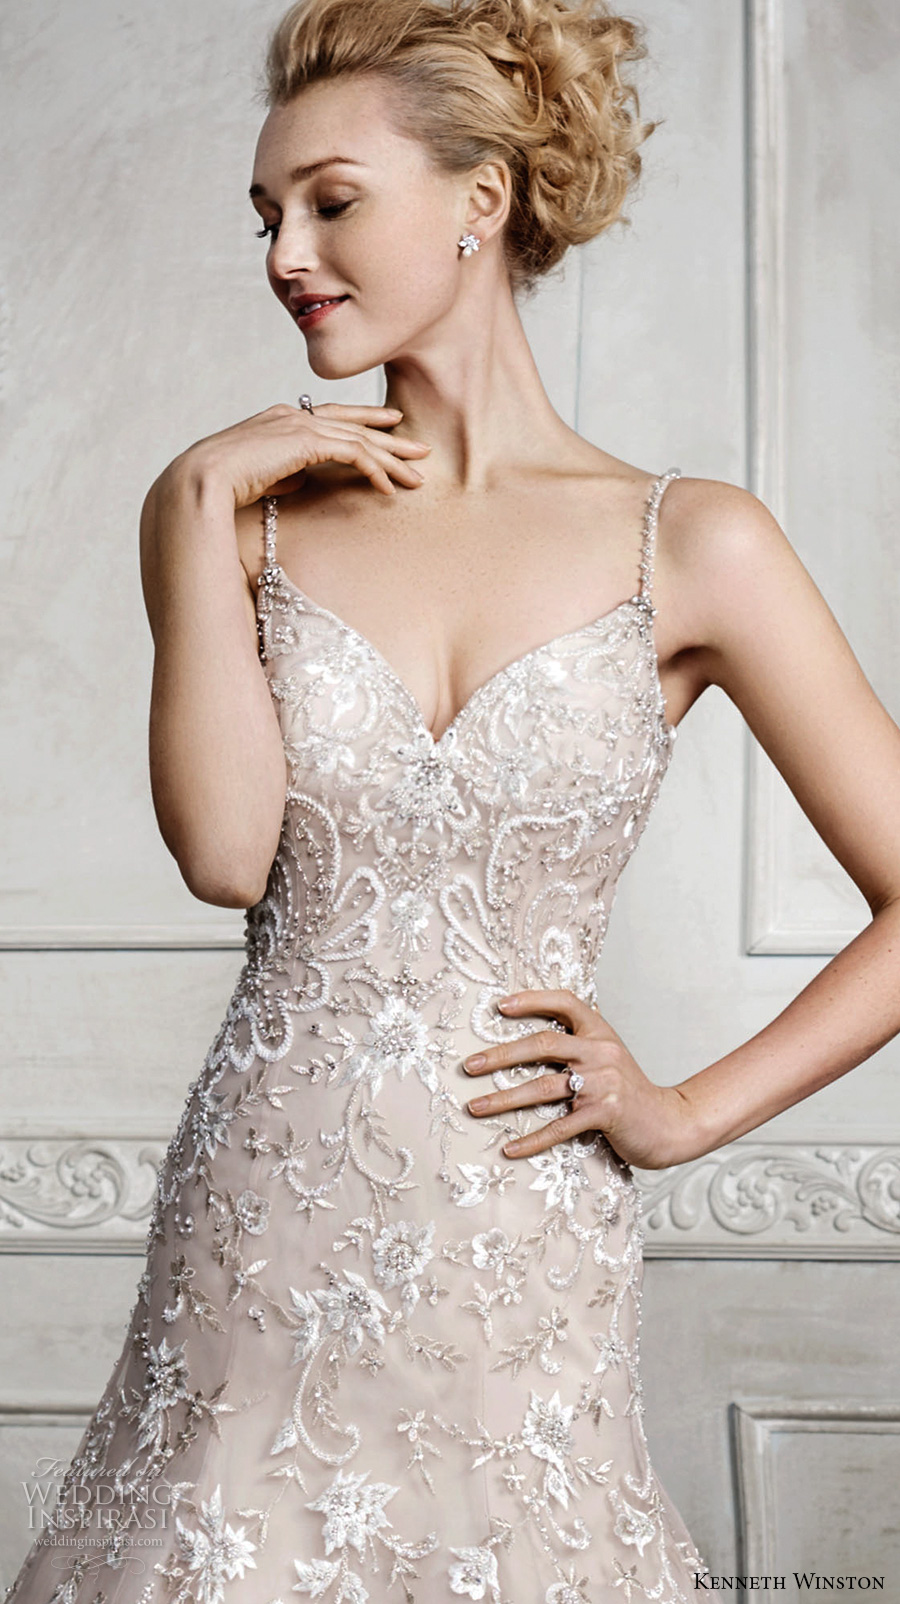 kenneth winston fall 2016 bridal spagetti strap v neck heavily embelished bodice romantic pretty champagne color modified a line wedding dress v back sweep train (1682) zv